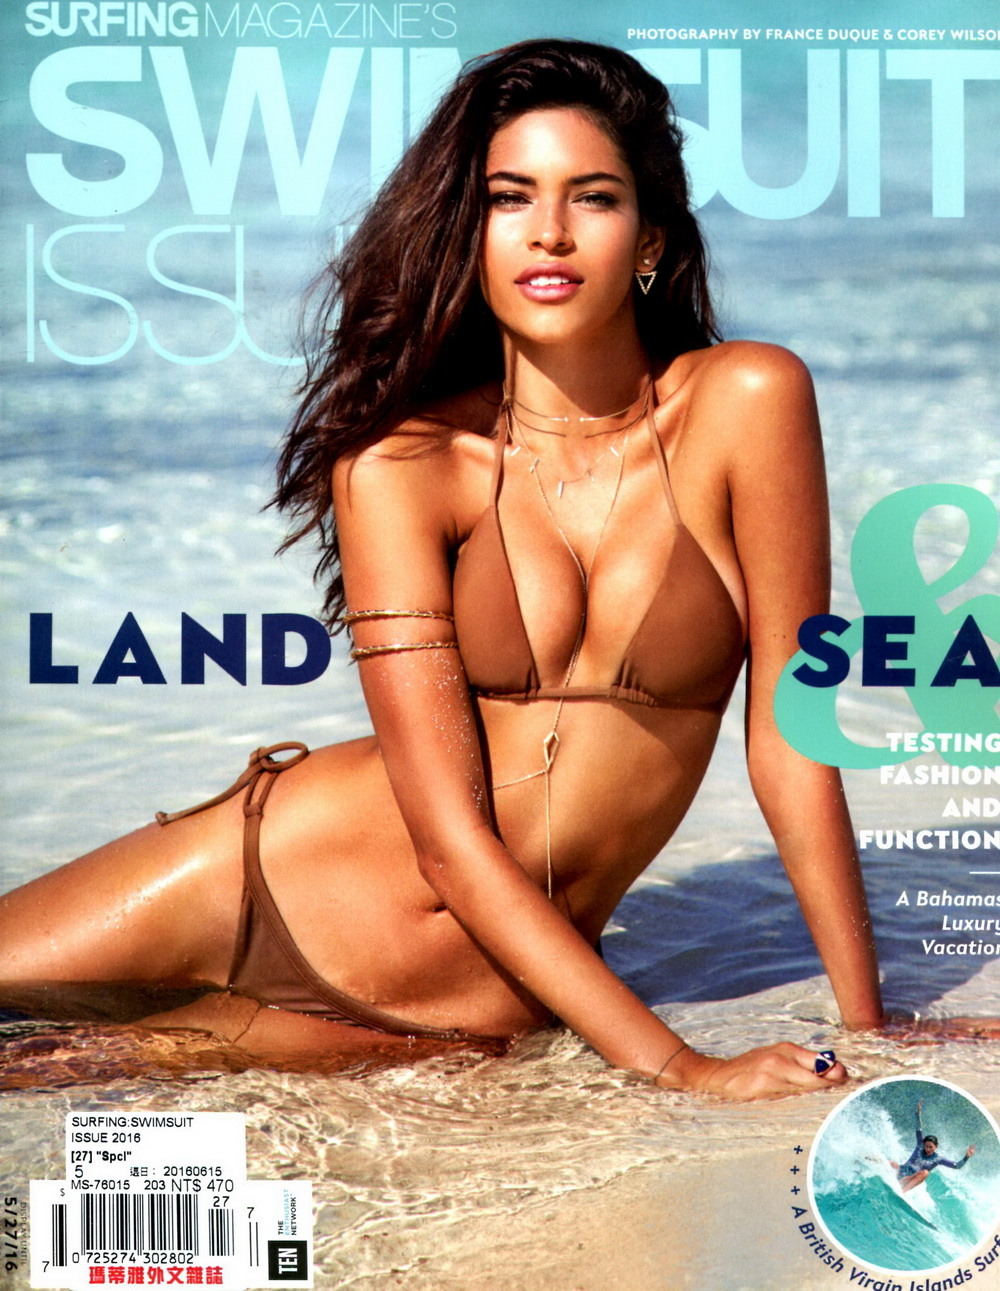 SURFING SWIMSUIT ISSUE 2016